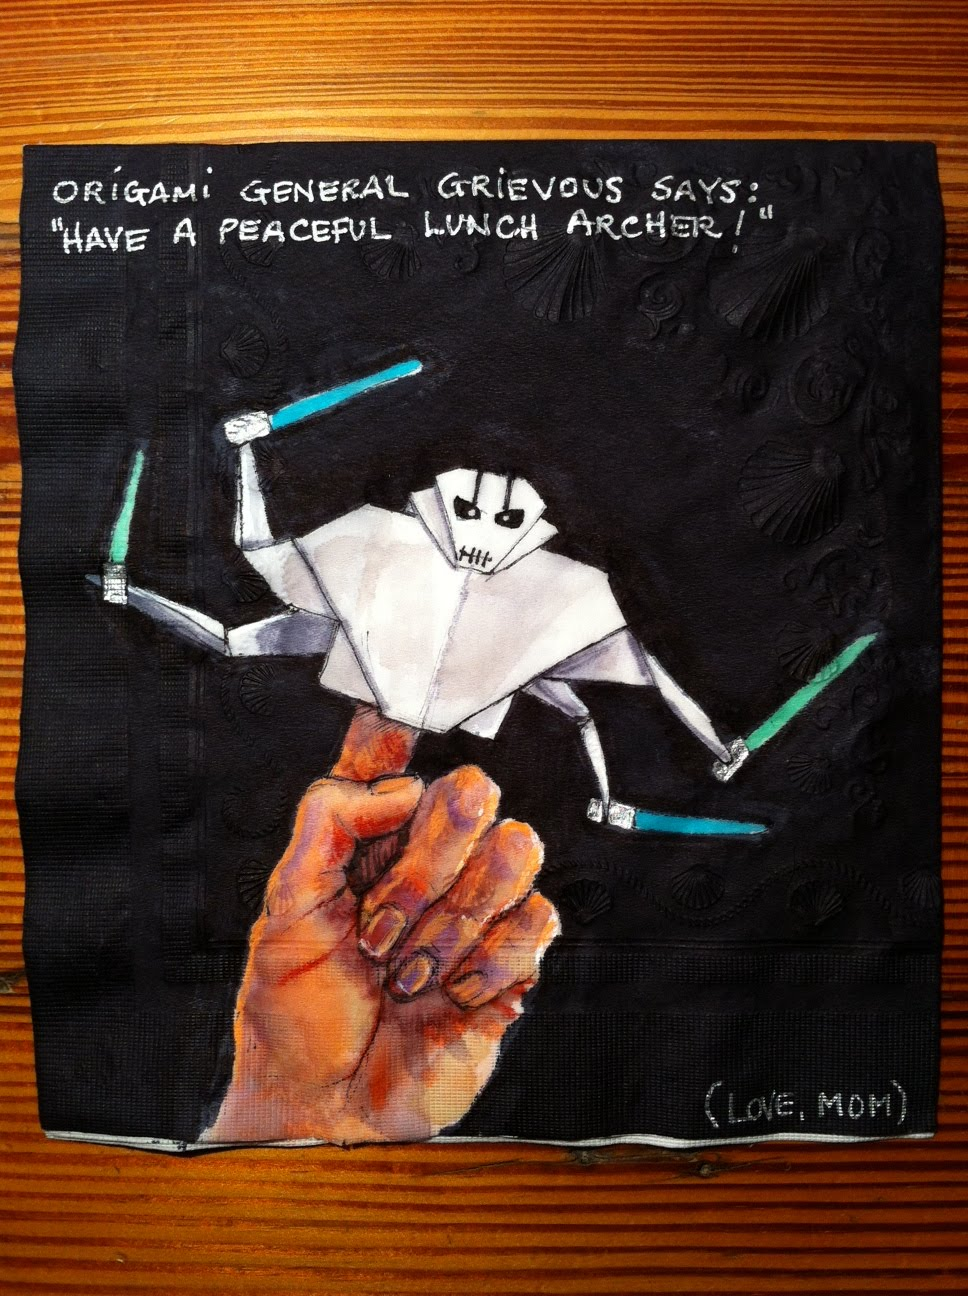 Daily Napkins Origami General Grievous For Archer